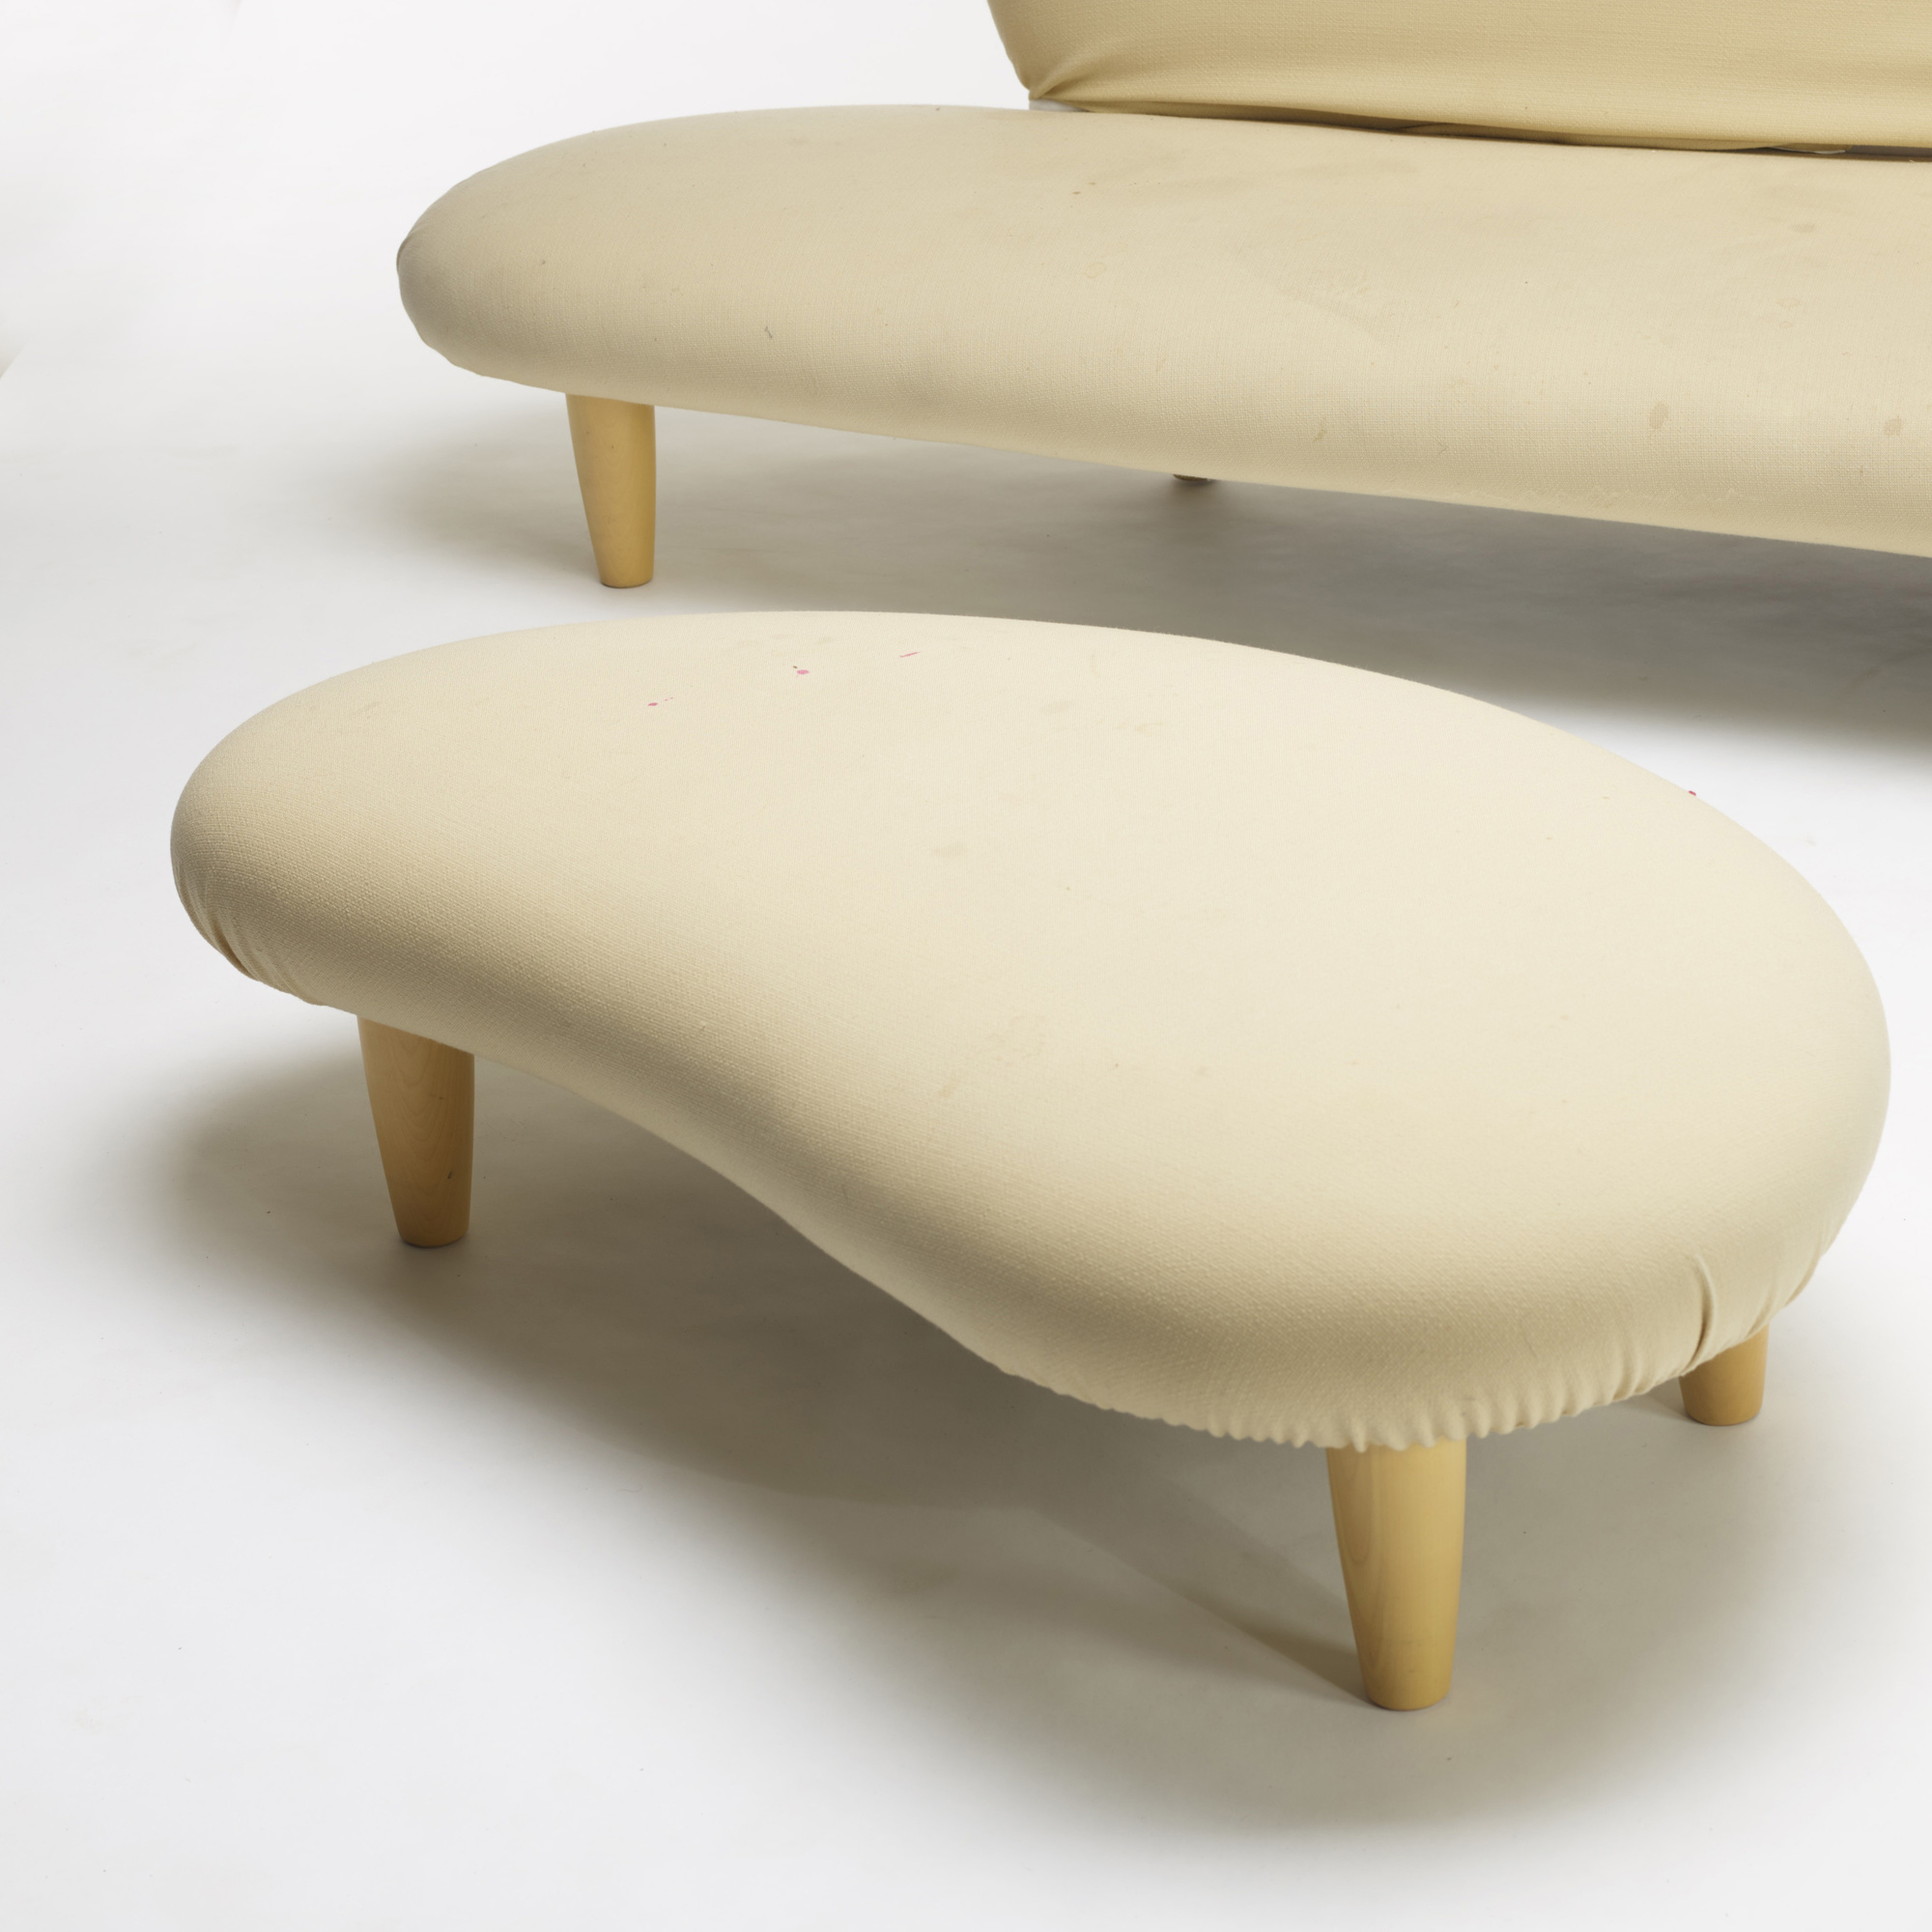 noguchi sofa reproduction curved sectional set isamu 120 rare cloud ottoman